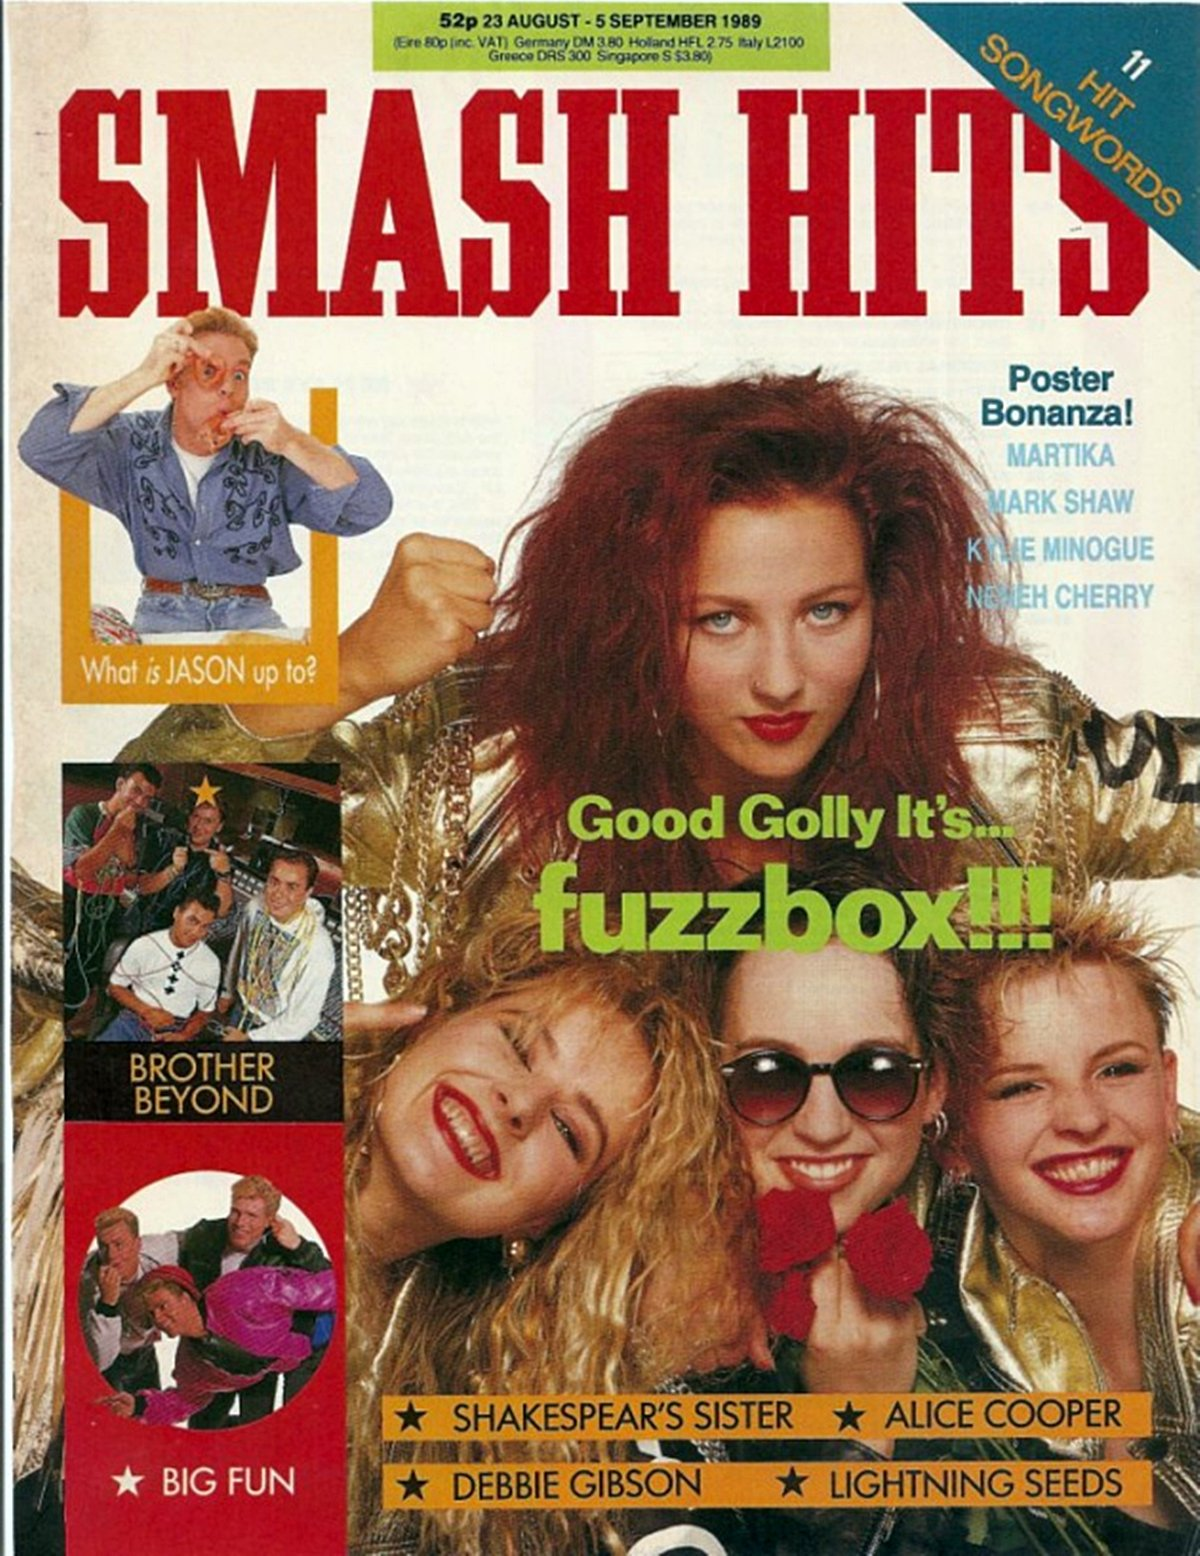 12 2 16 Smash Hits Covers That Will Take You Right Back To Your Youth